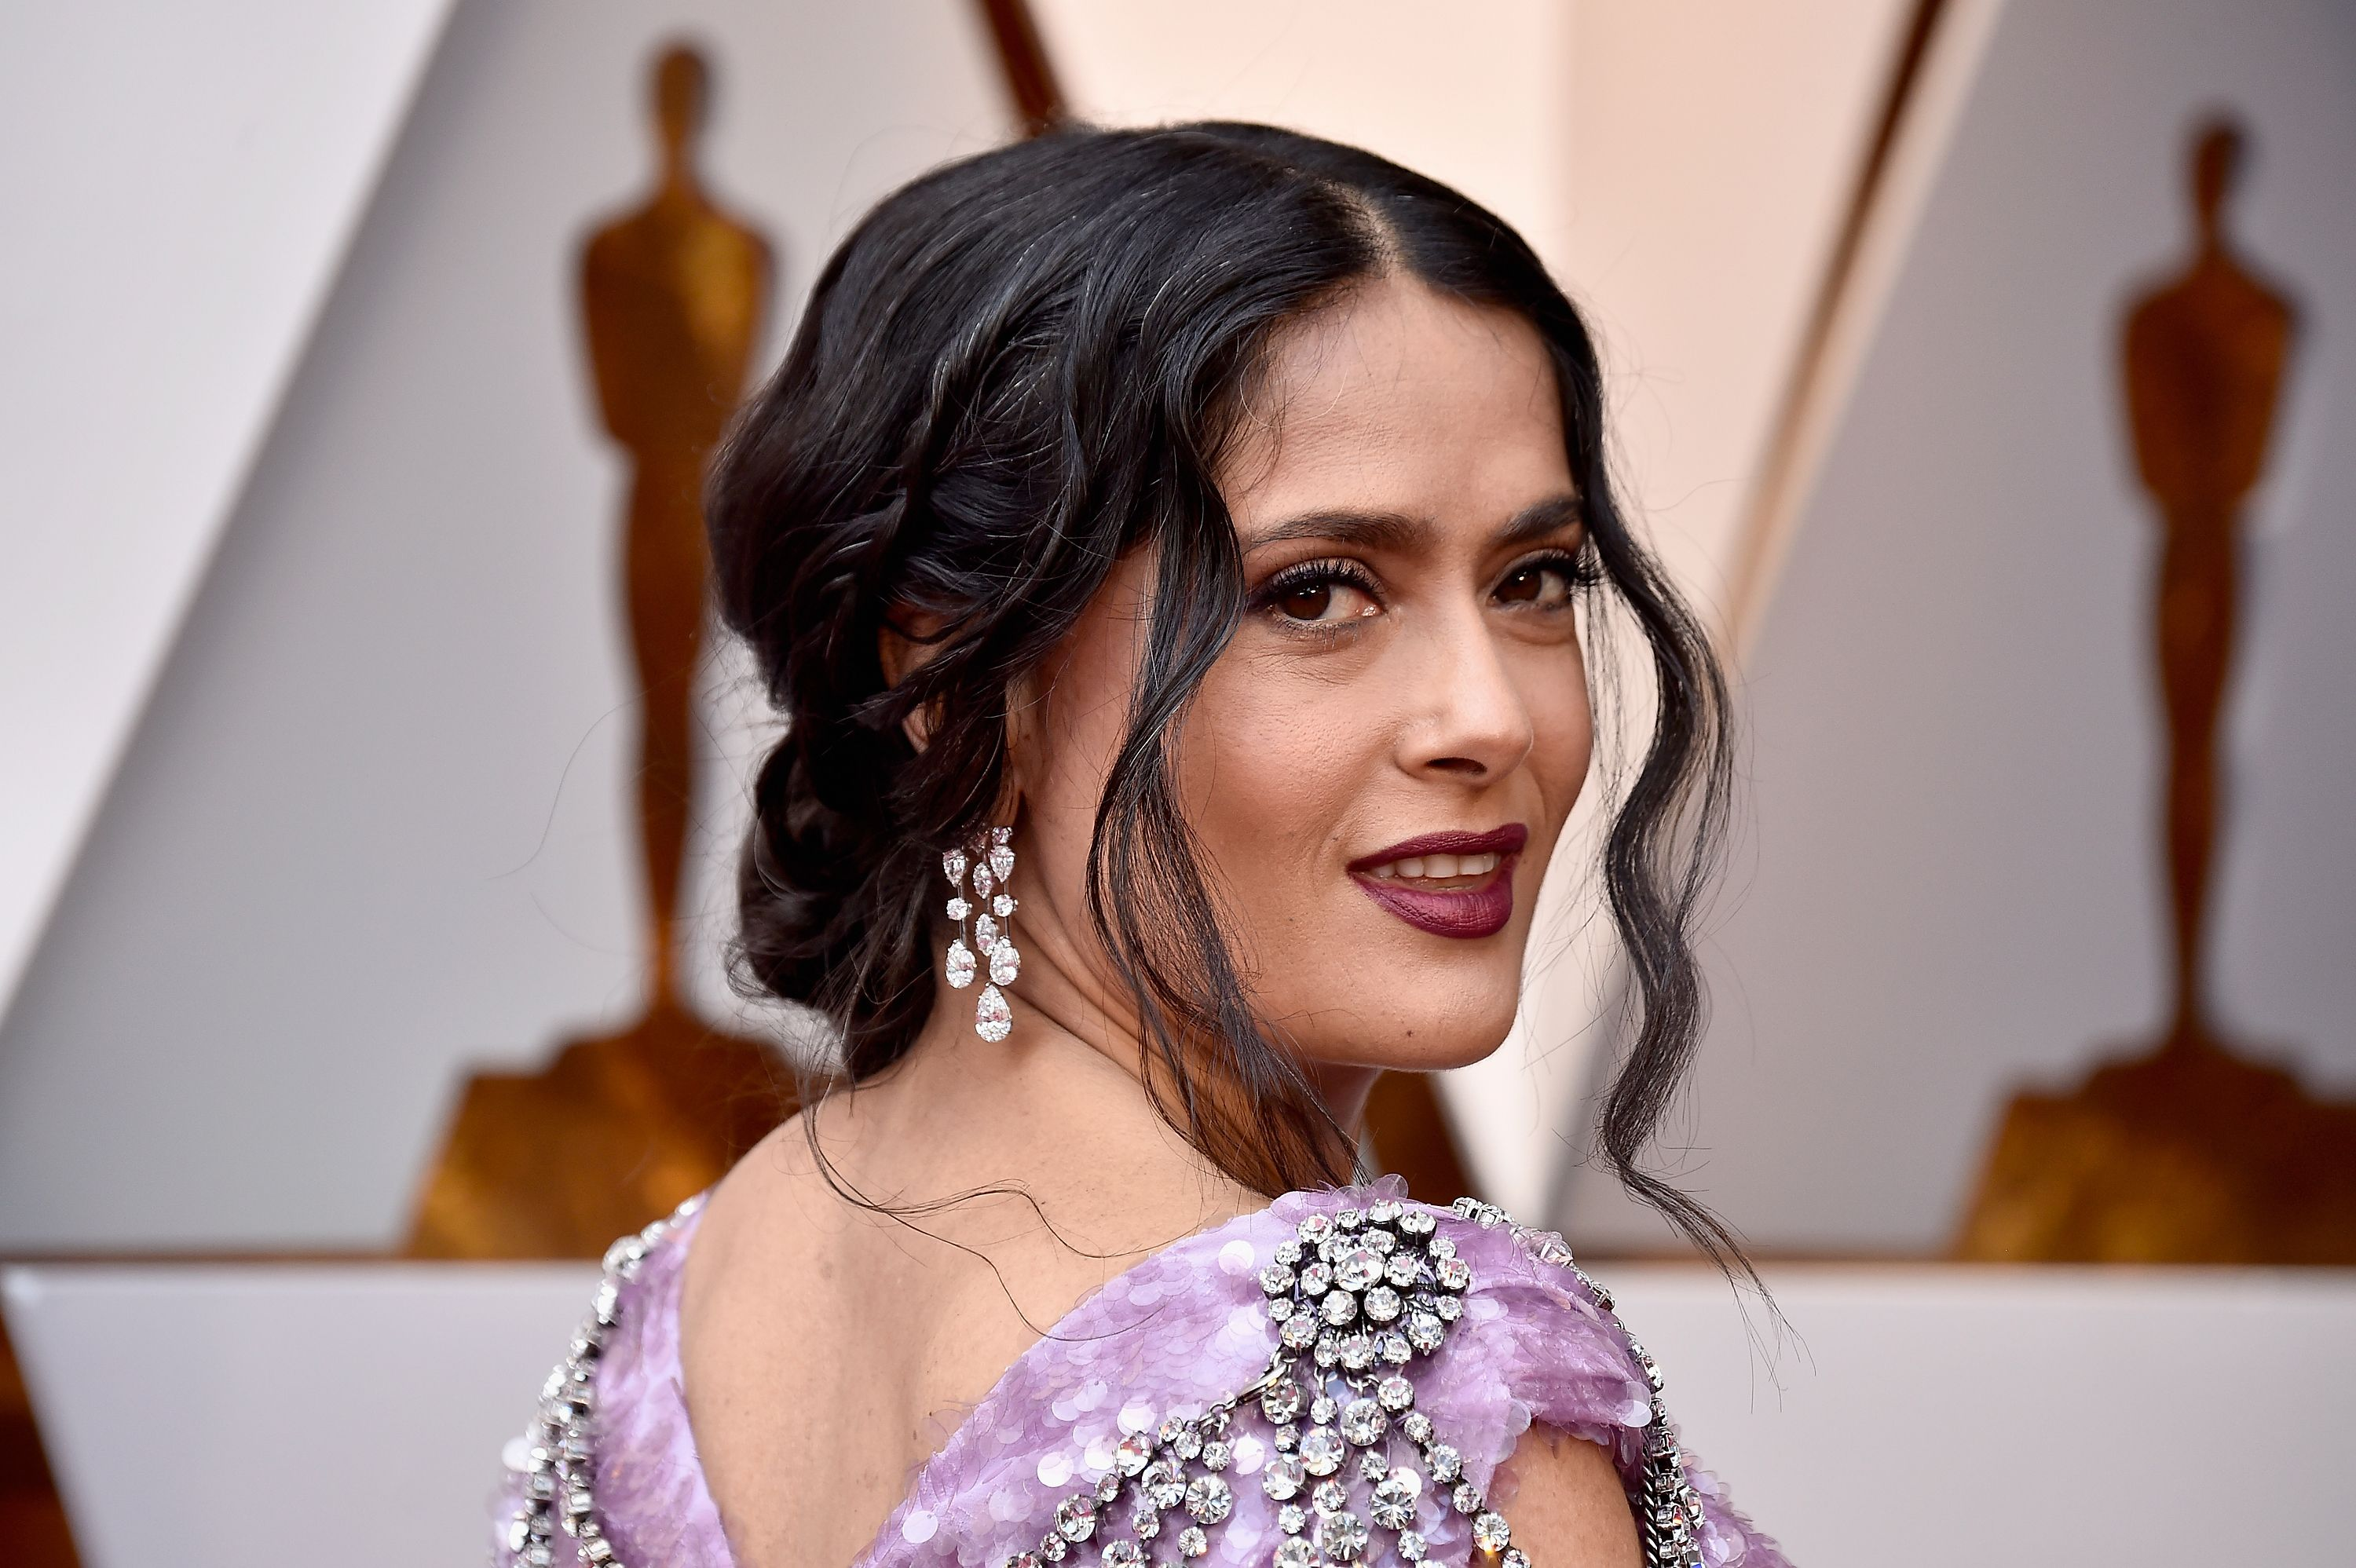 Salma Hayek Pinault Tells Andy Cohen She Turned Down the Role of Selena